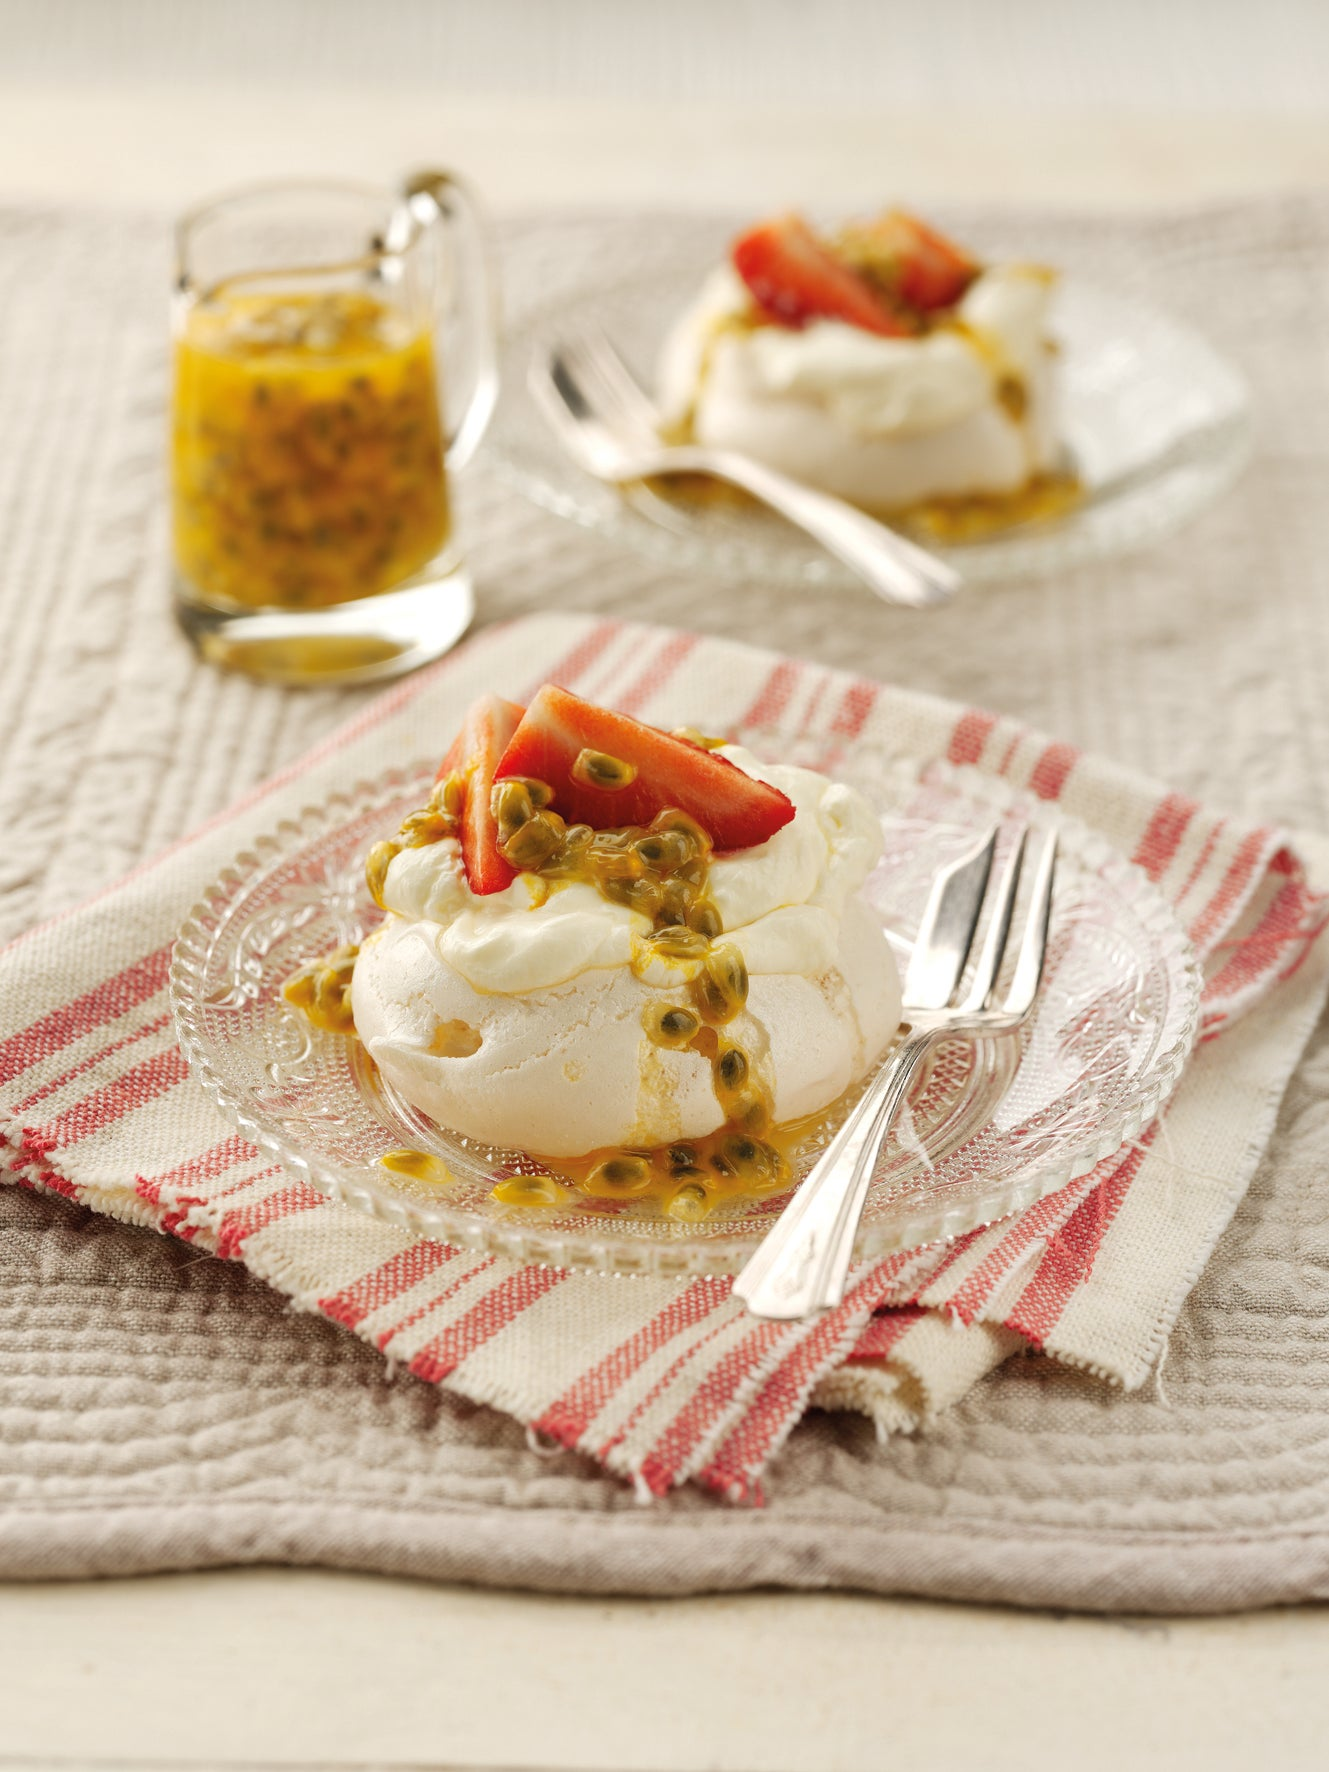 Nielsen-Massey-Meringues-with-Vanilla-Seed-and-Passionfruit.jpg